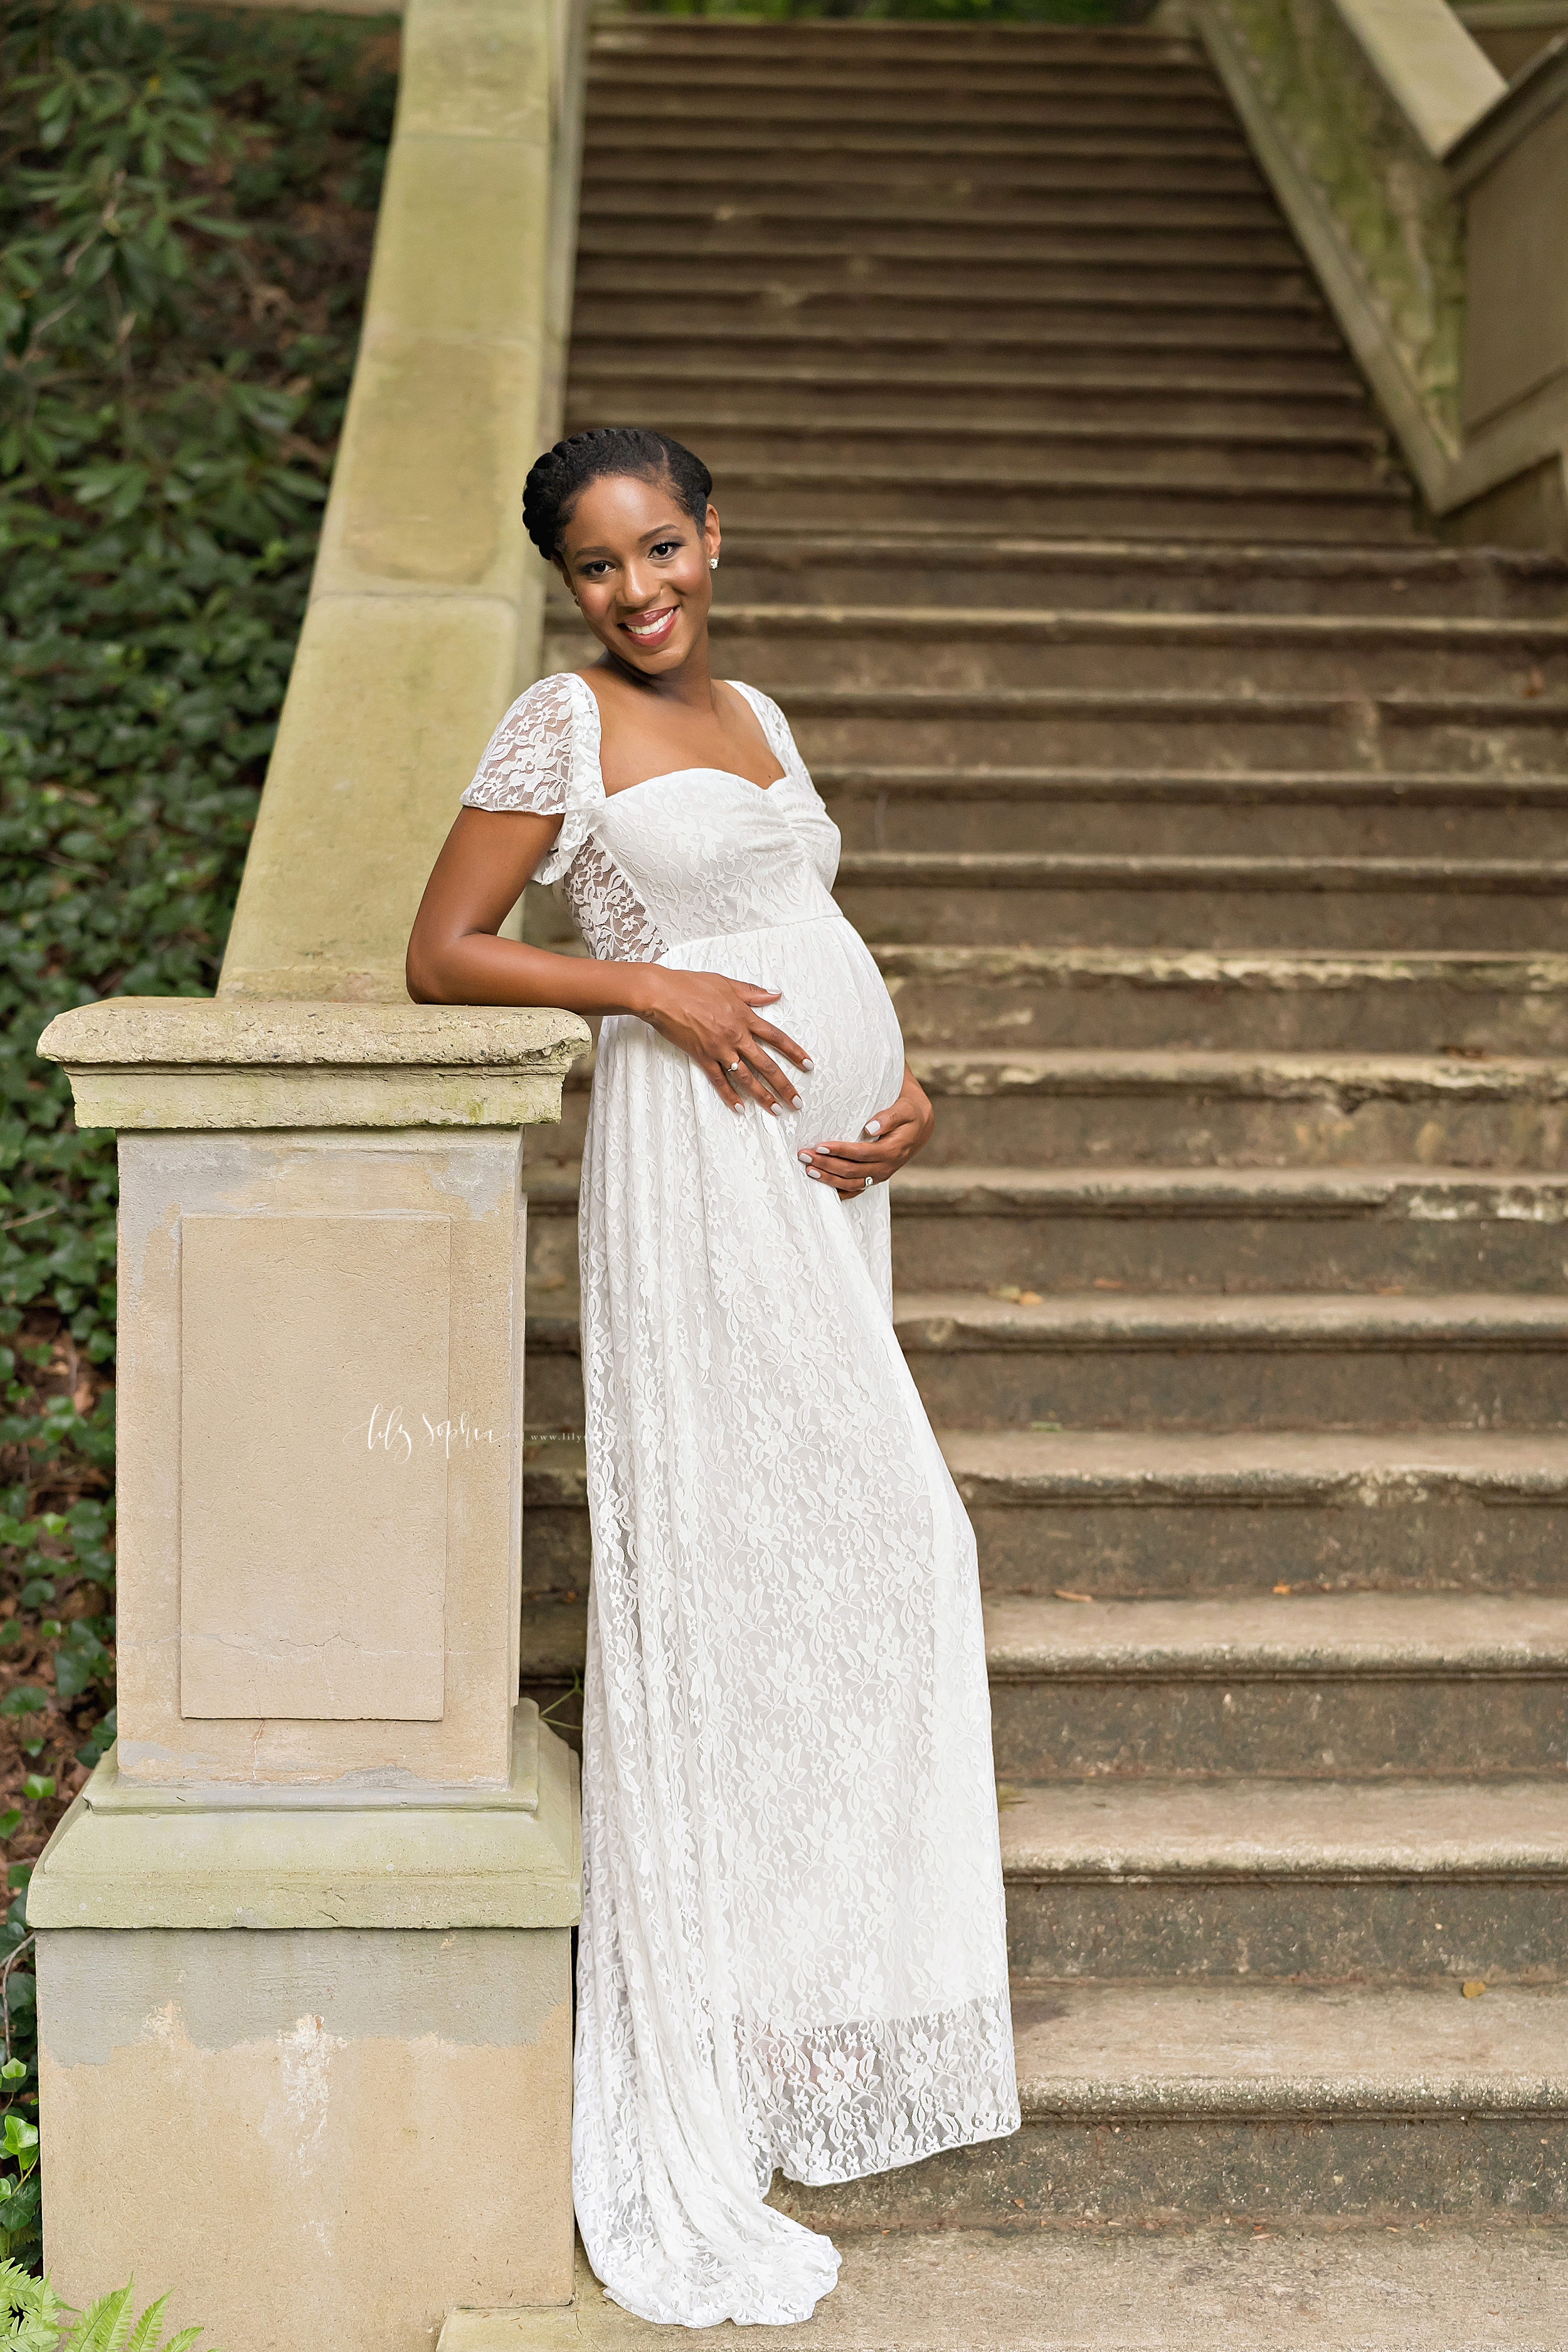 Maternity photo of an African-American woman wearing a lace overlay full-length gown with short bell sleeves as she stands at sunset at the base of a stone staircase and leans with her right elbow on the newel post of the stone bannister in an Atlanta garden